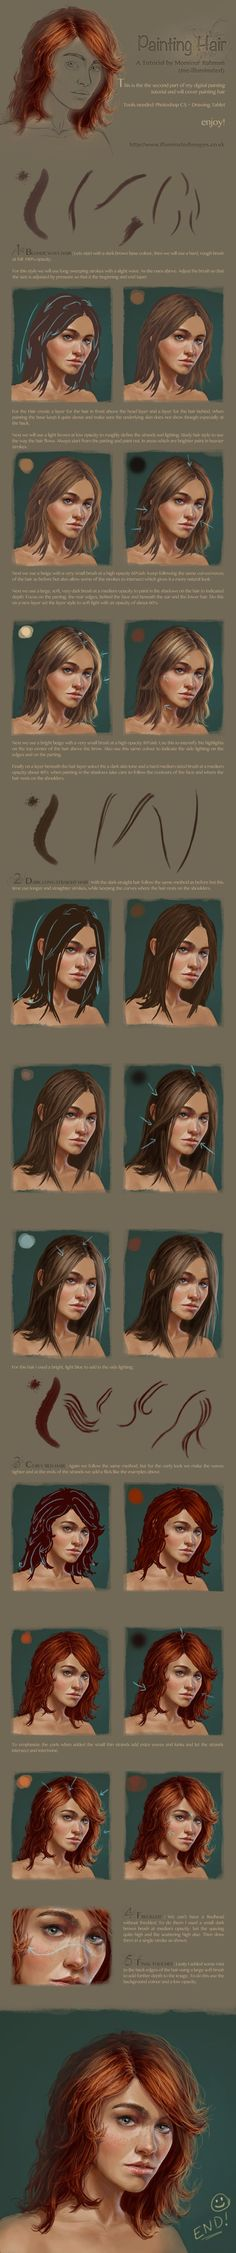 Digital Hair / Portrait Painting Tutorial part 2 by me-illuminated.de… on Related posts: Digital art illustration painting tutorial //. Digital Painting Tutorials, Digital Art Tutorial, Art Tutorials, Digital Paintings, Hair Painting, Painting & Drawing, Drawing Hair, Photoshop, Digital Drawing